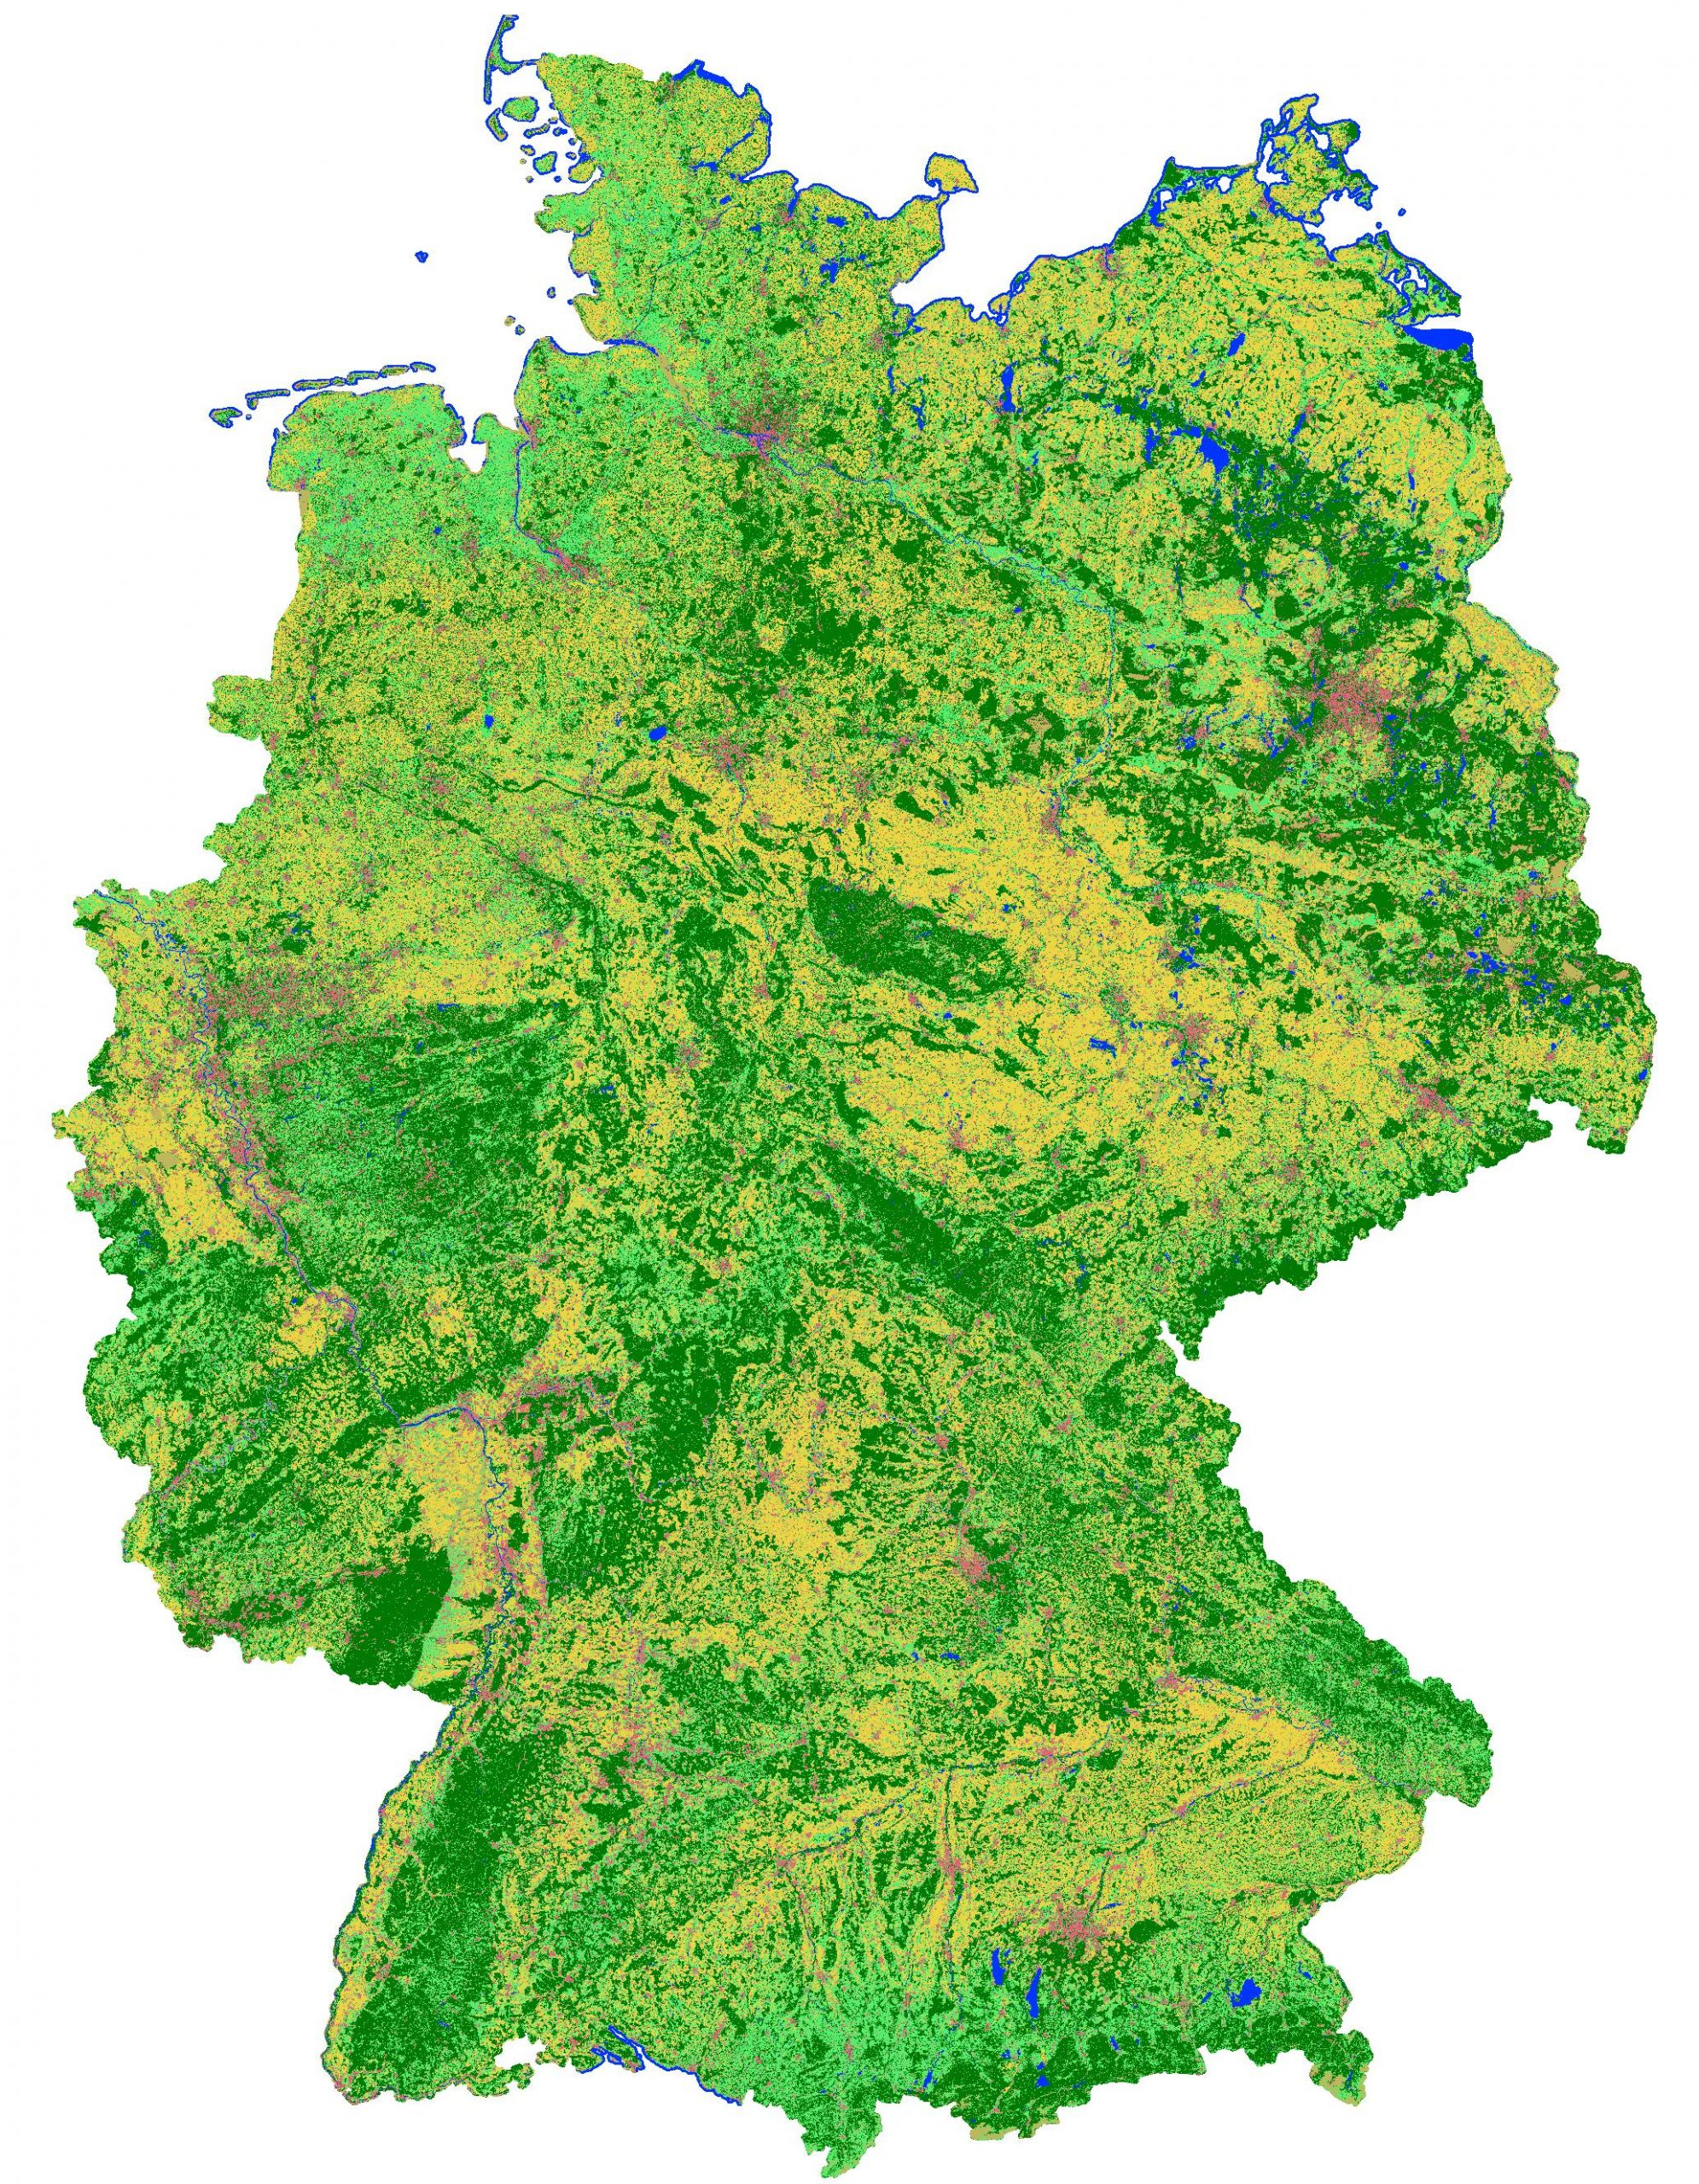 Map of Germany of the land cover classification results for 2020